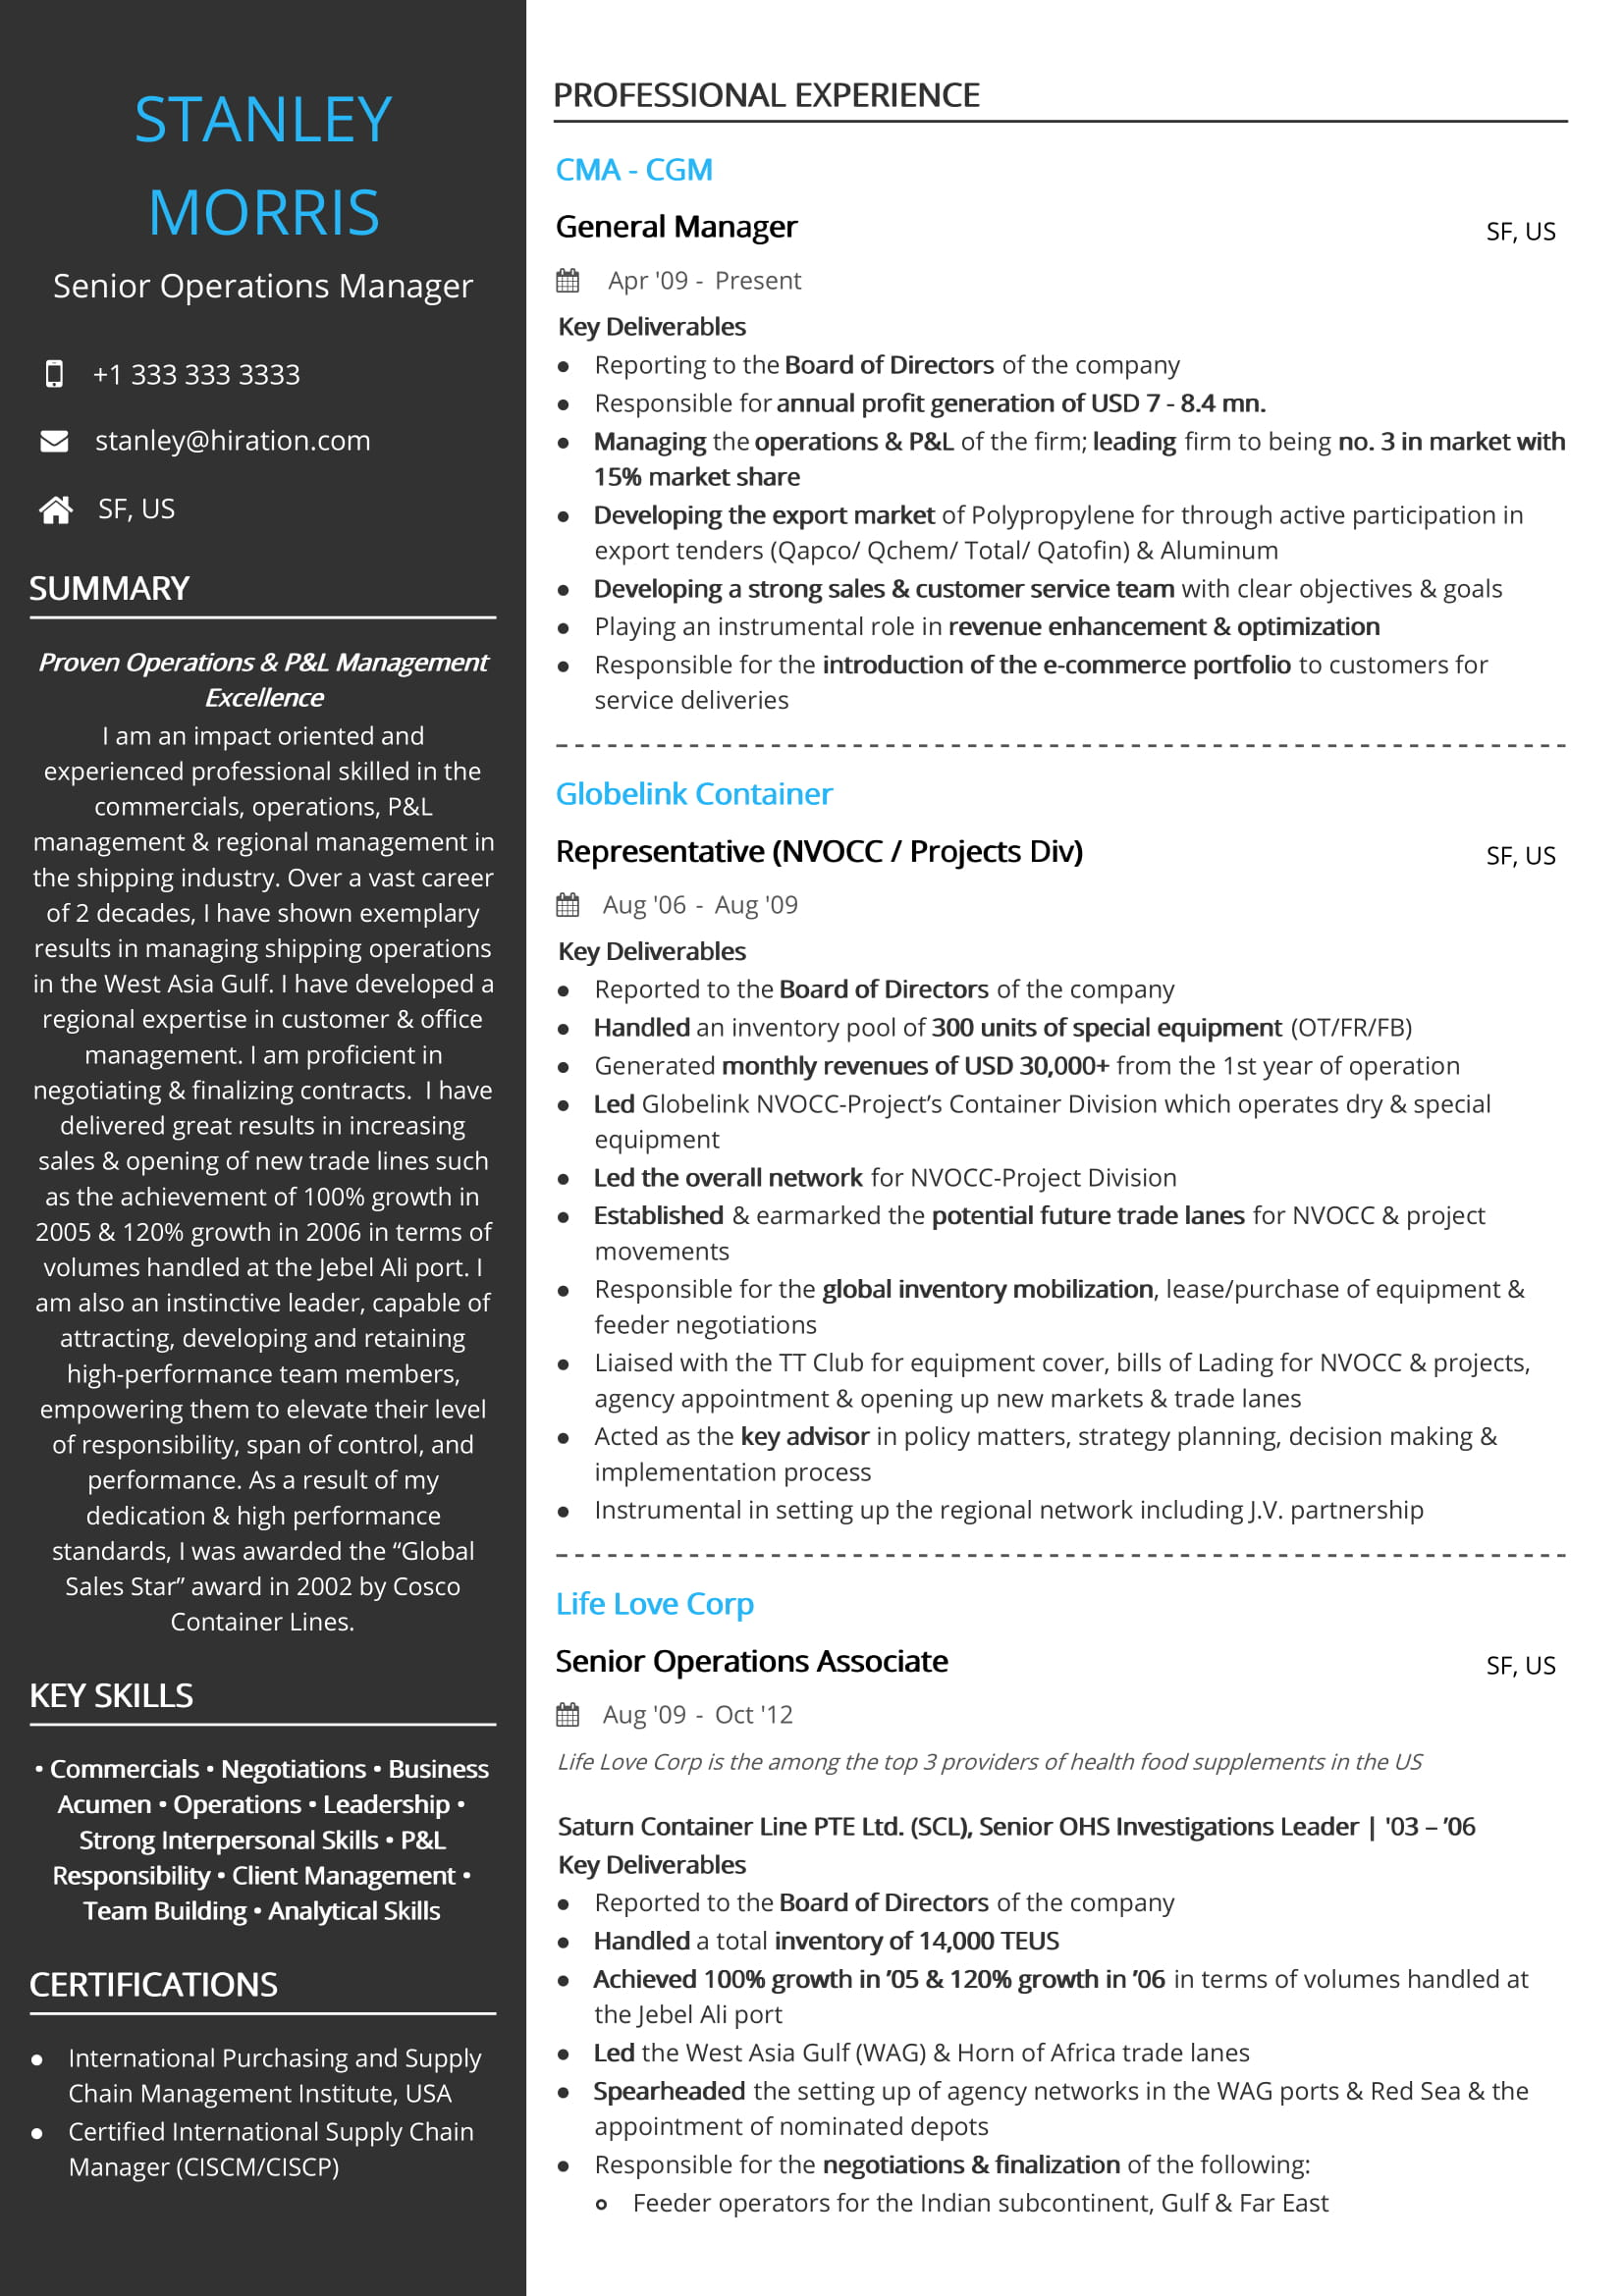 resume profile summary for operations manager